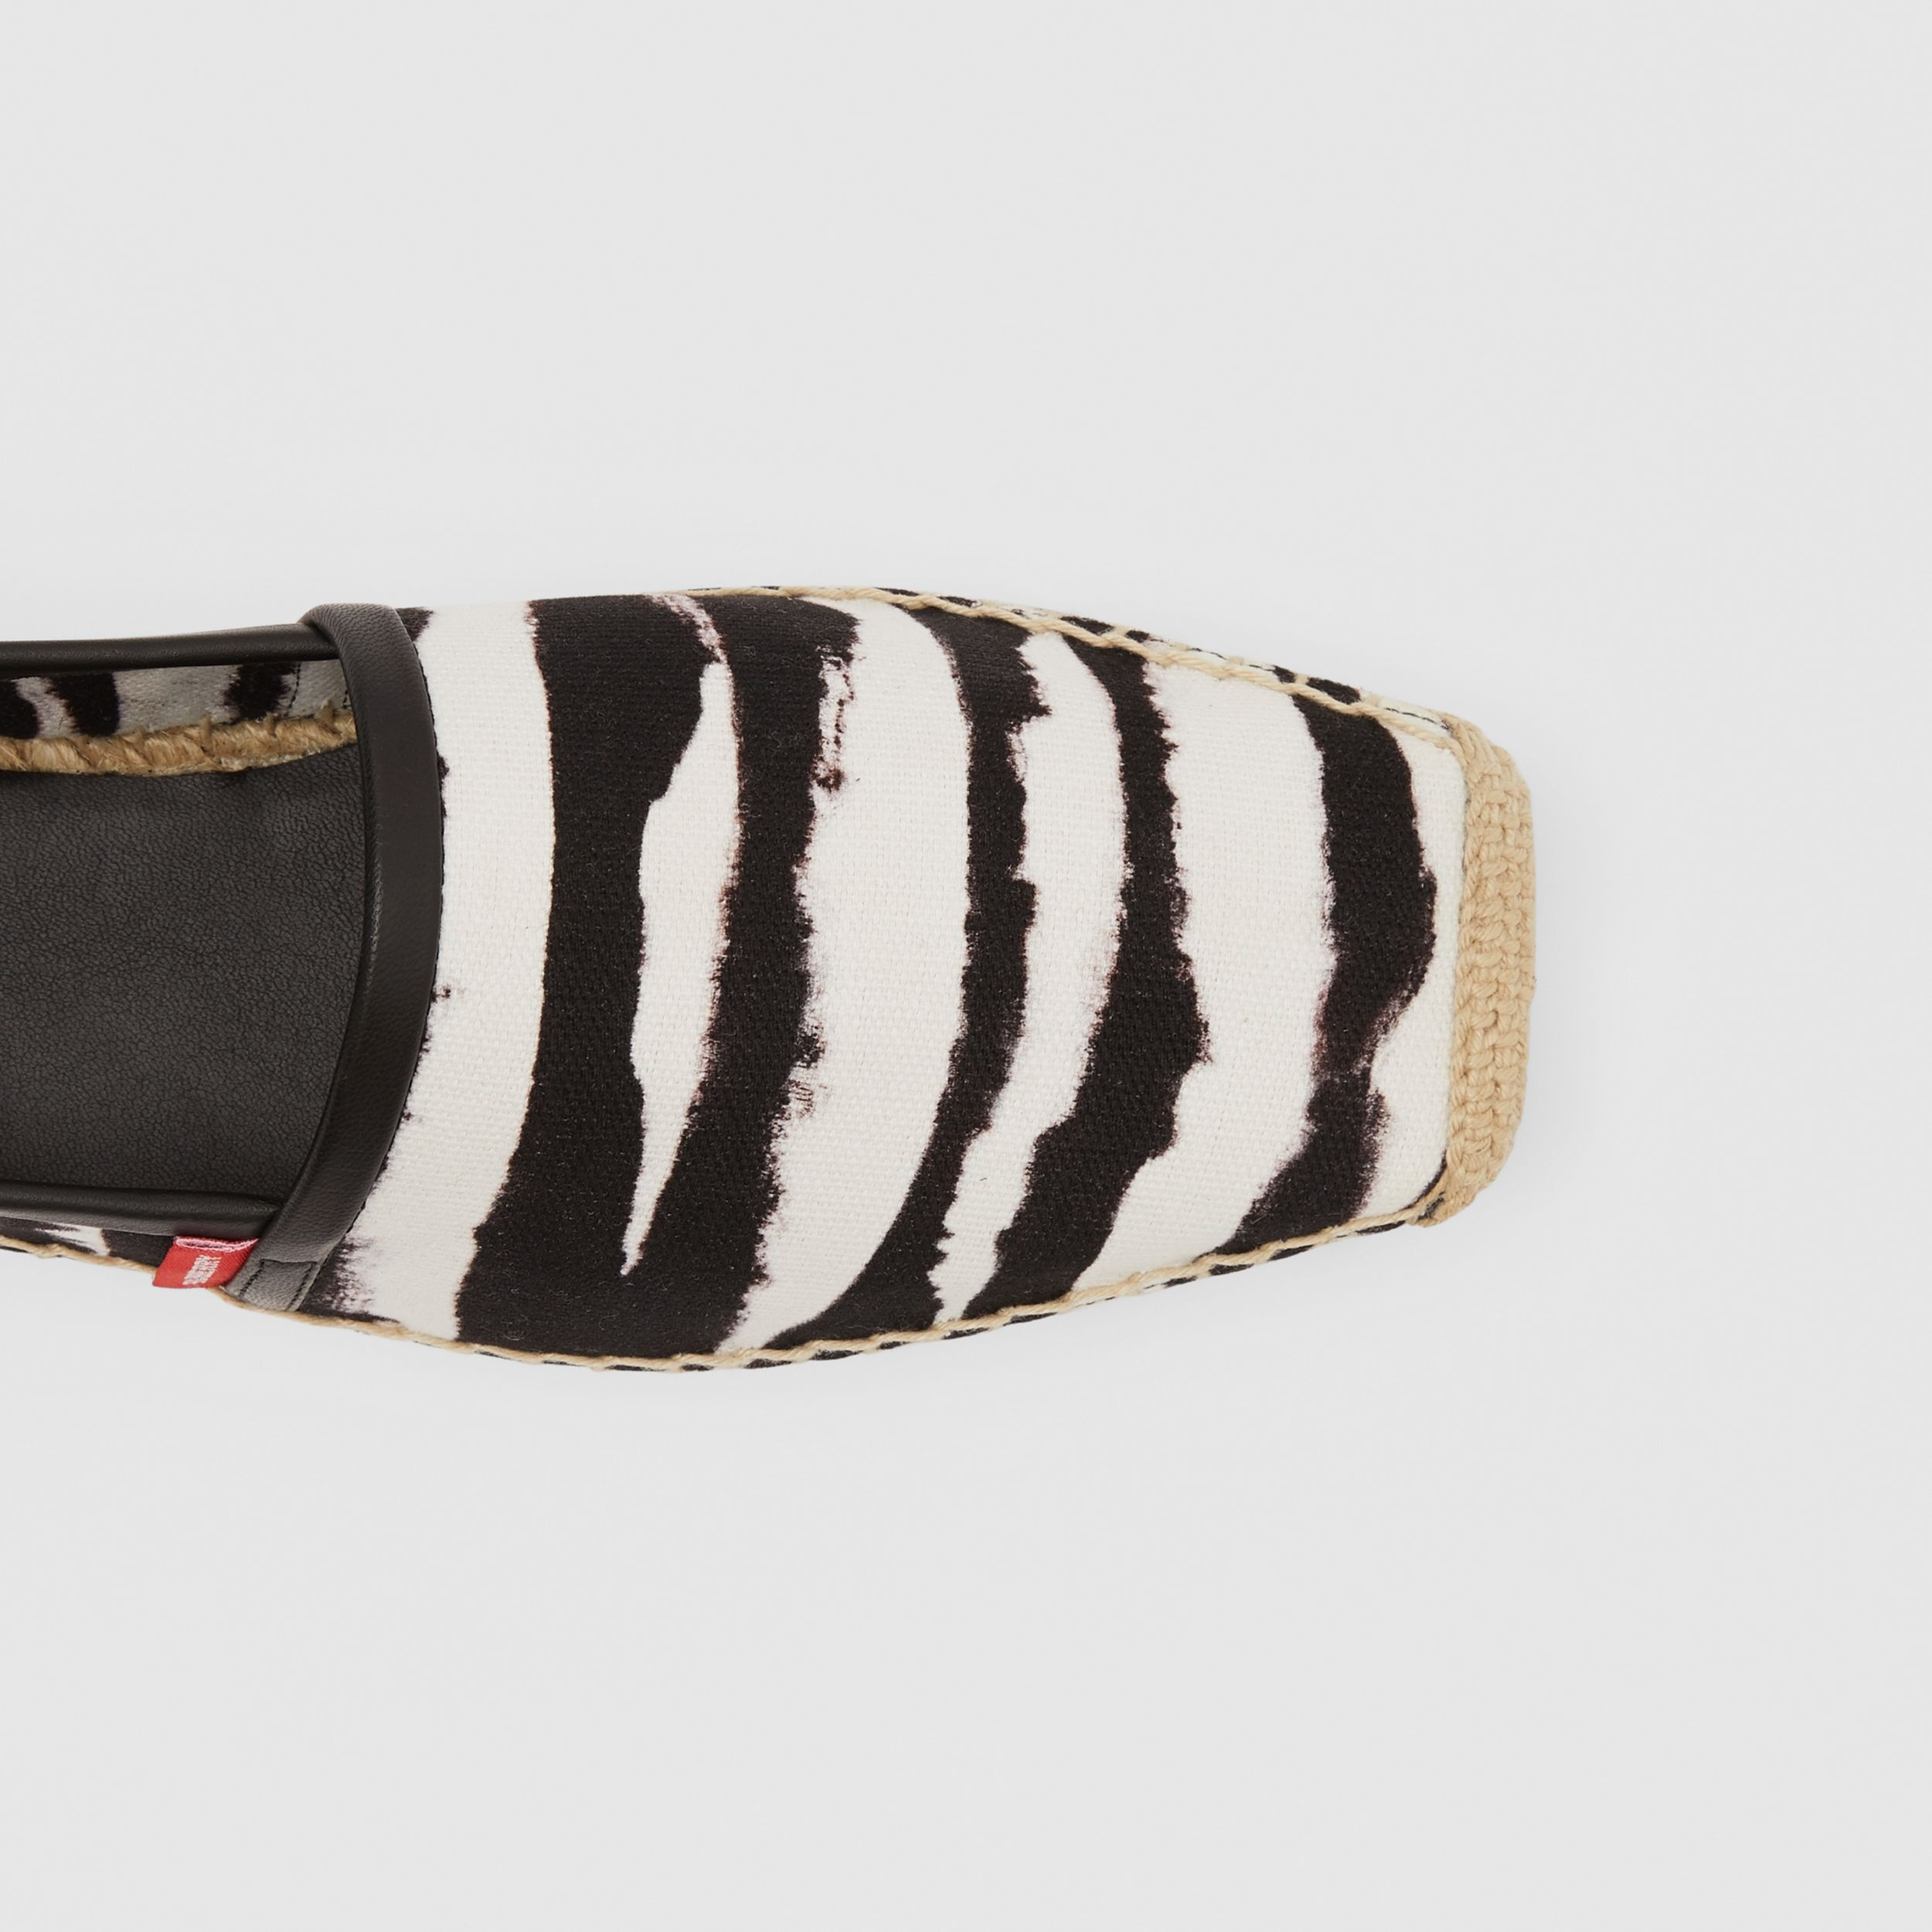 Watercolour Print Cotton Canvas Espadrilles in Black/white - Women | Burberry - 2